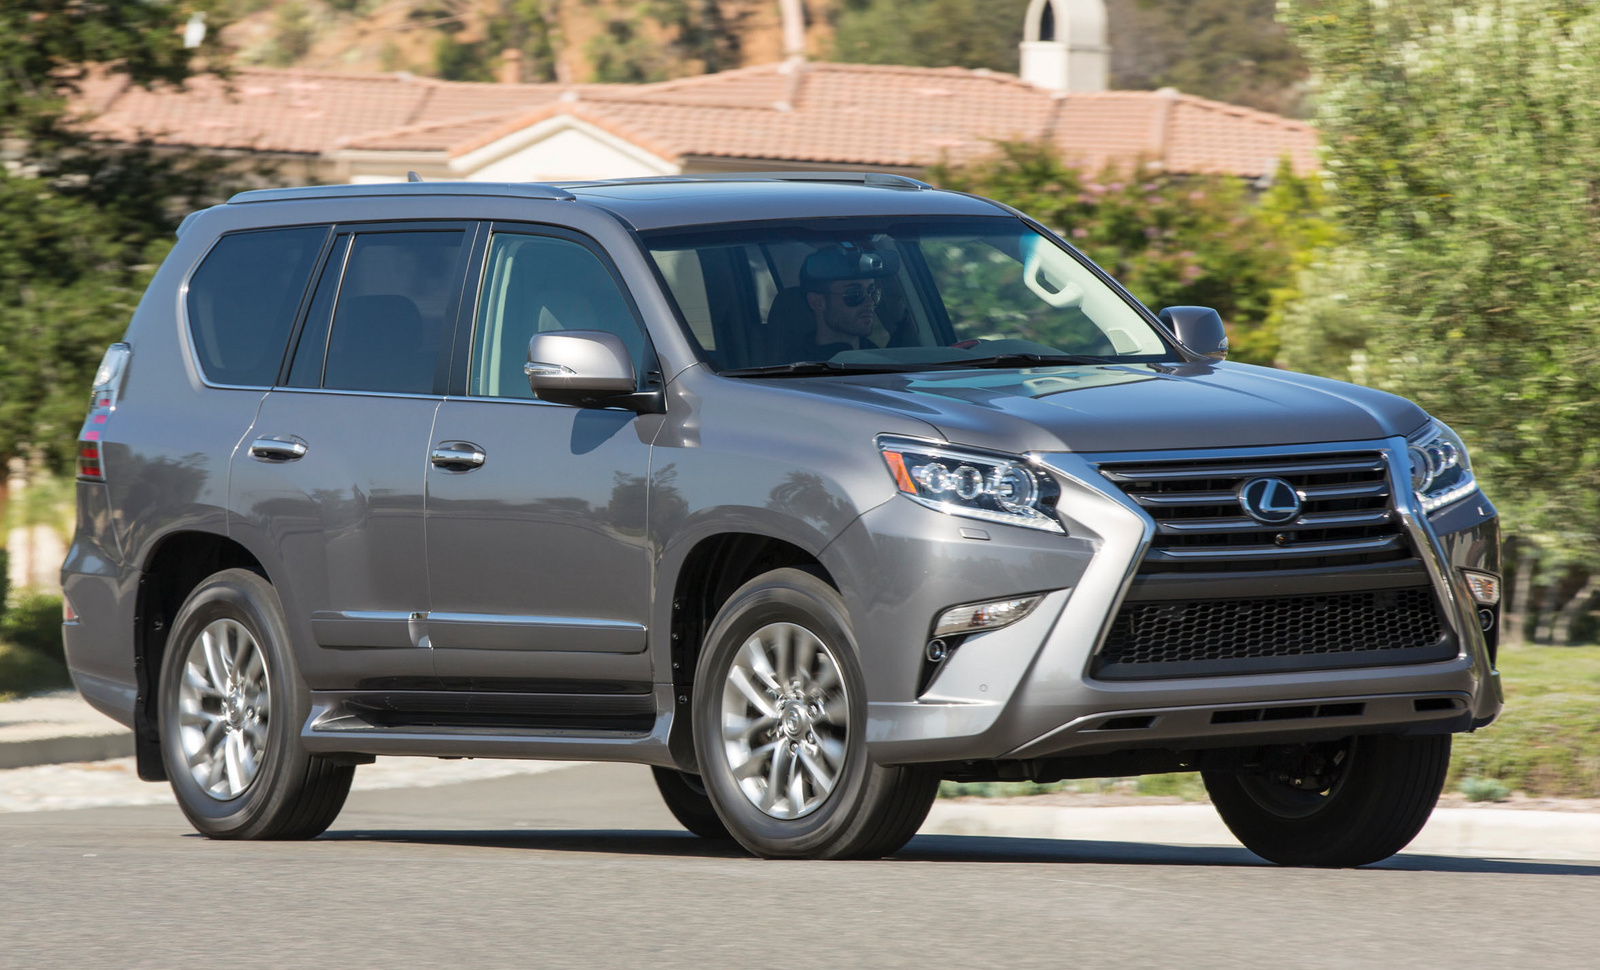 2014 Lexus GX 460 Review CarGurus